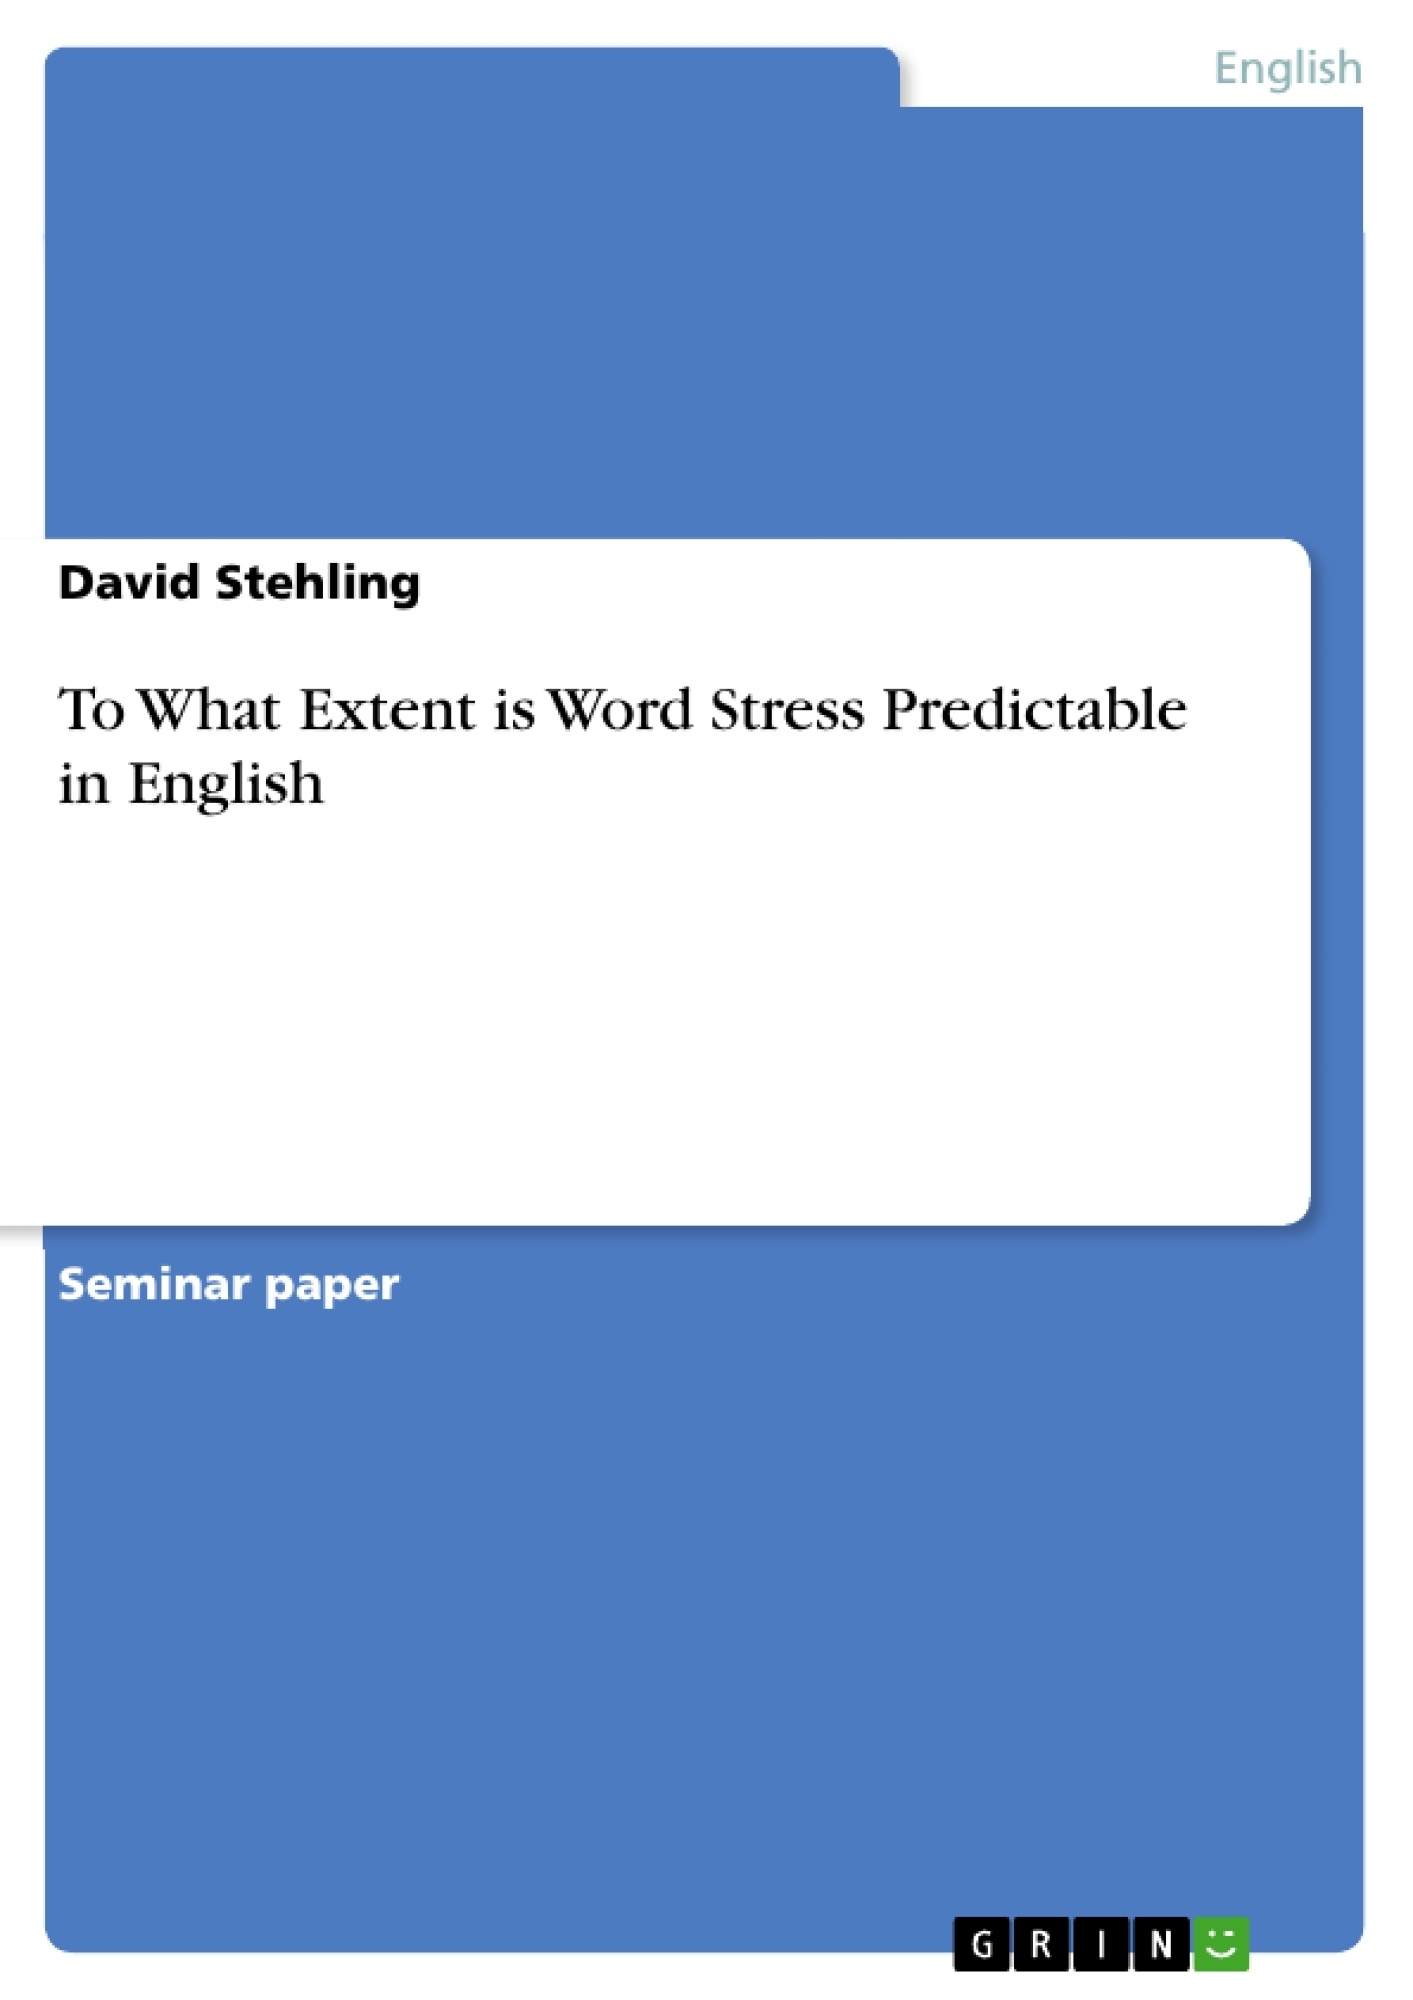 Title: To What Extent is Word Stress Predictable in English